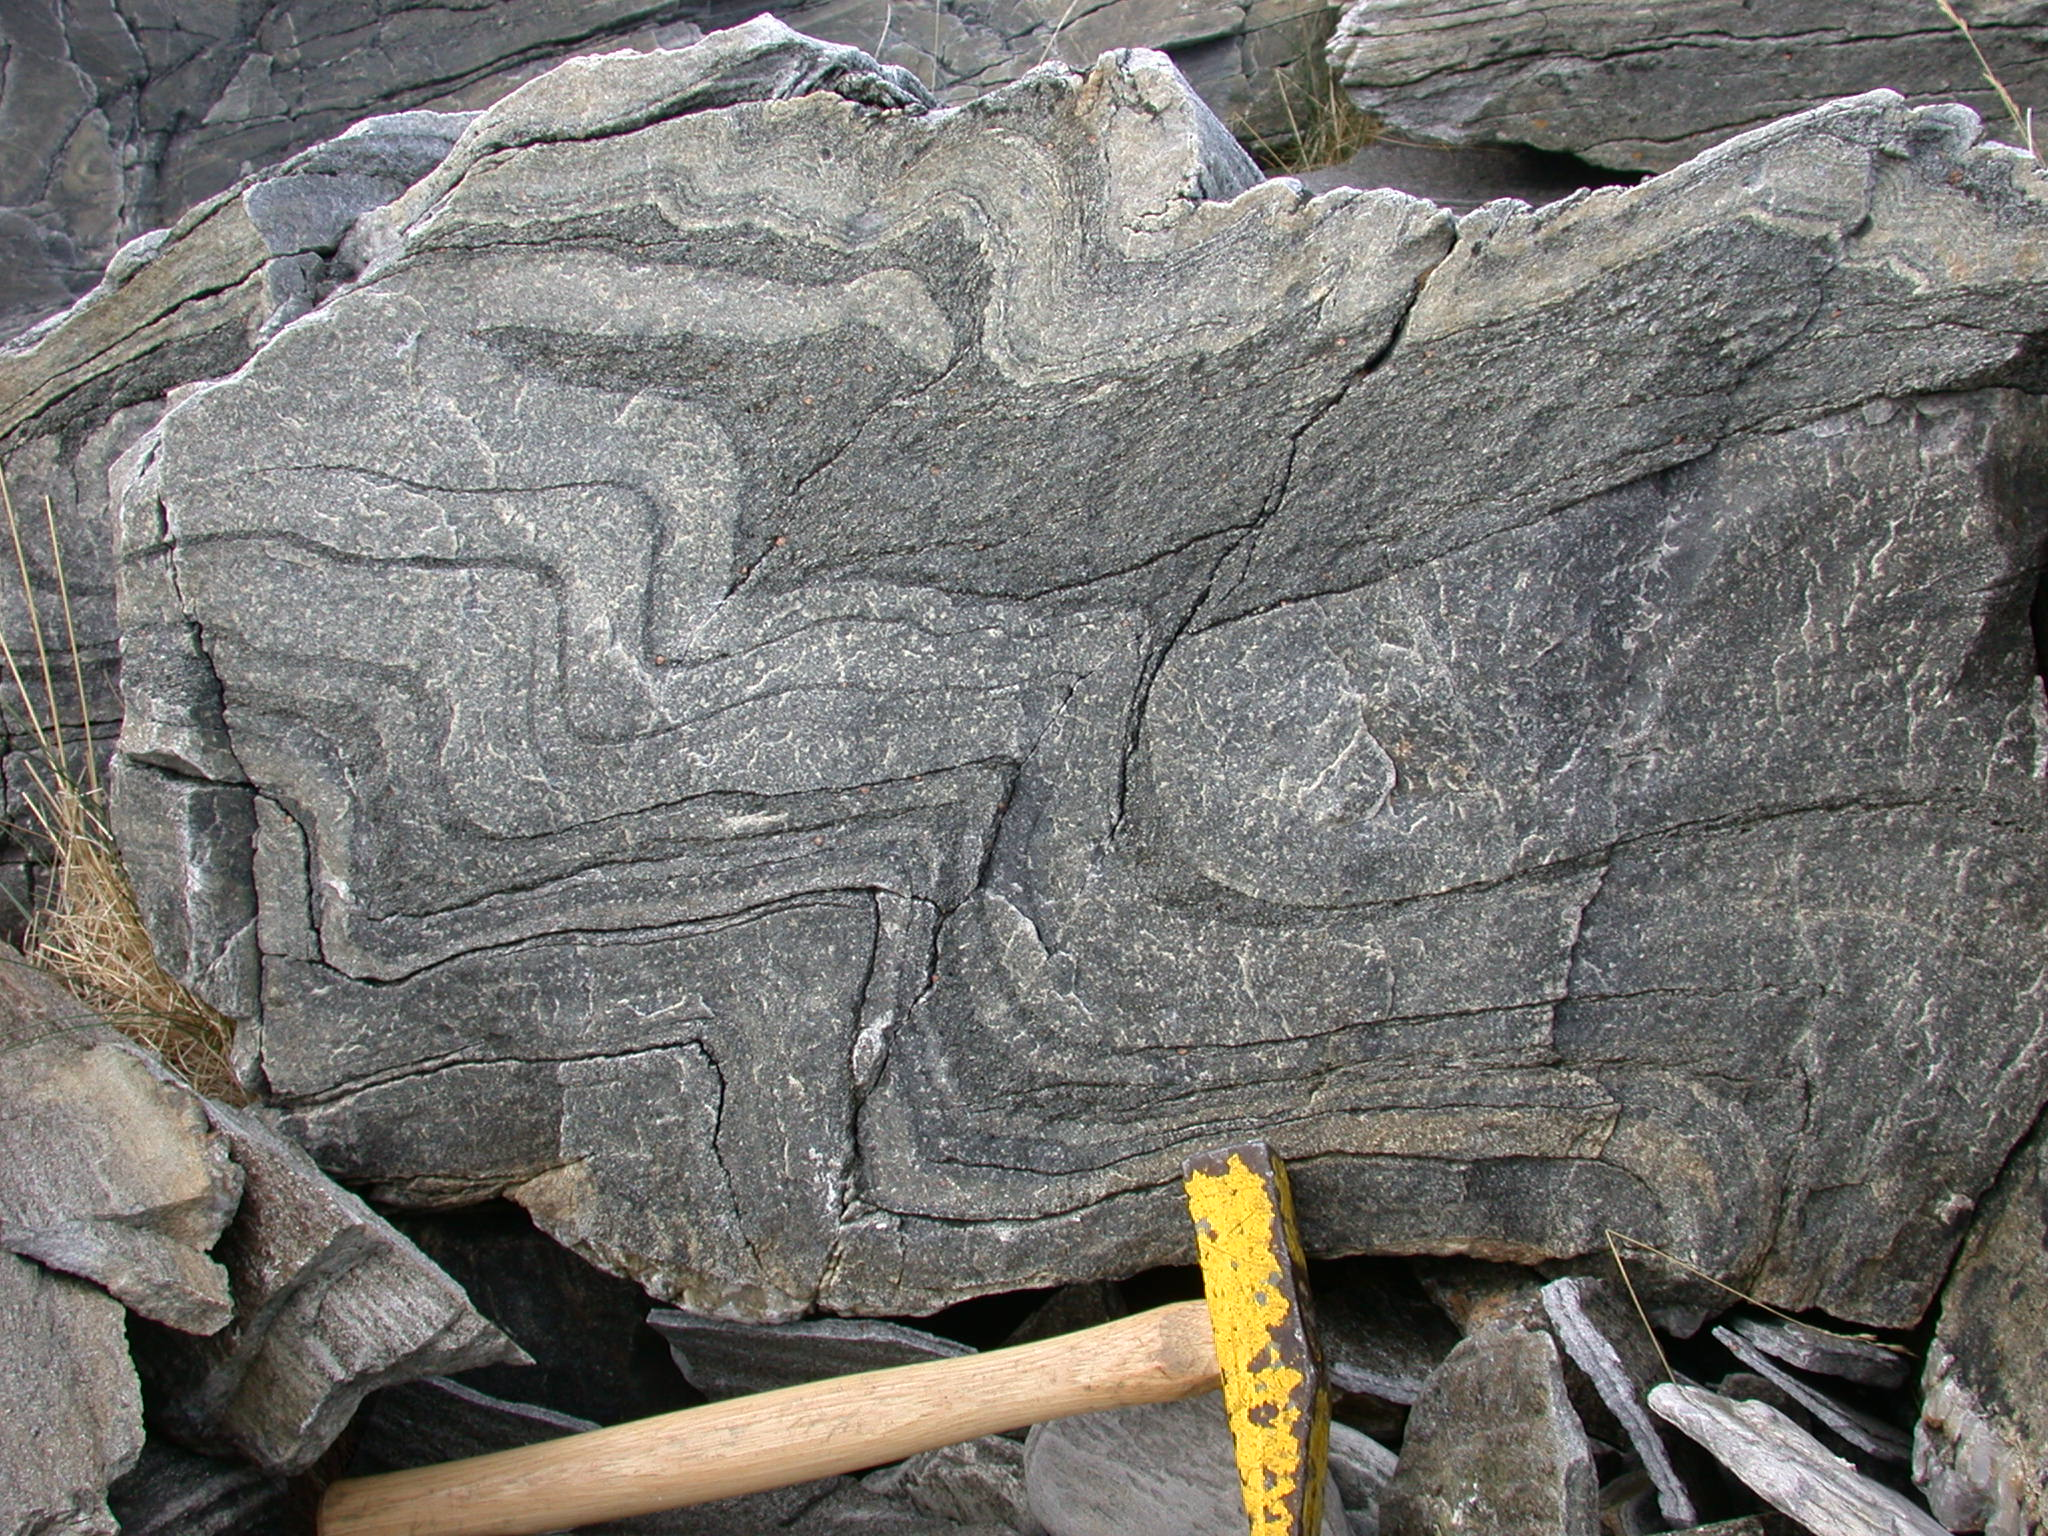 Structural Geology by the Deformation numbers | Metageologist